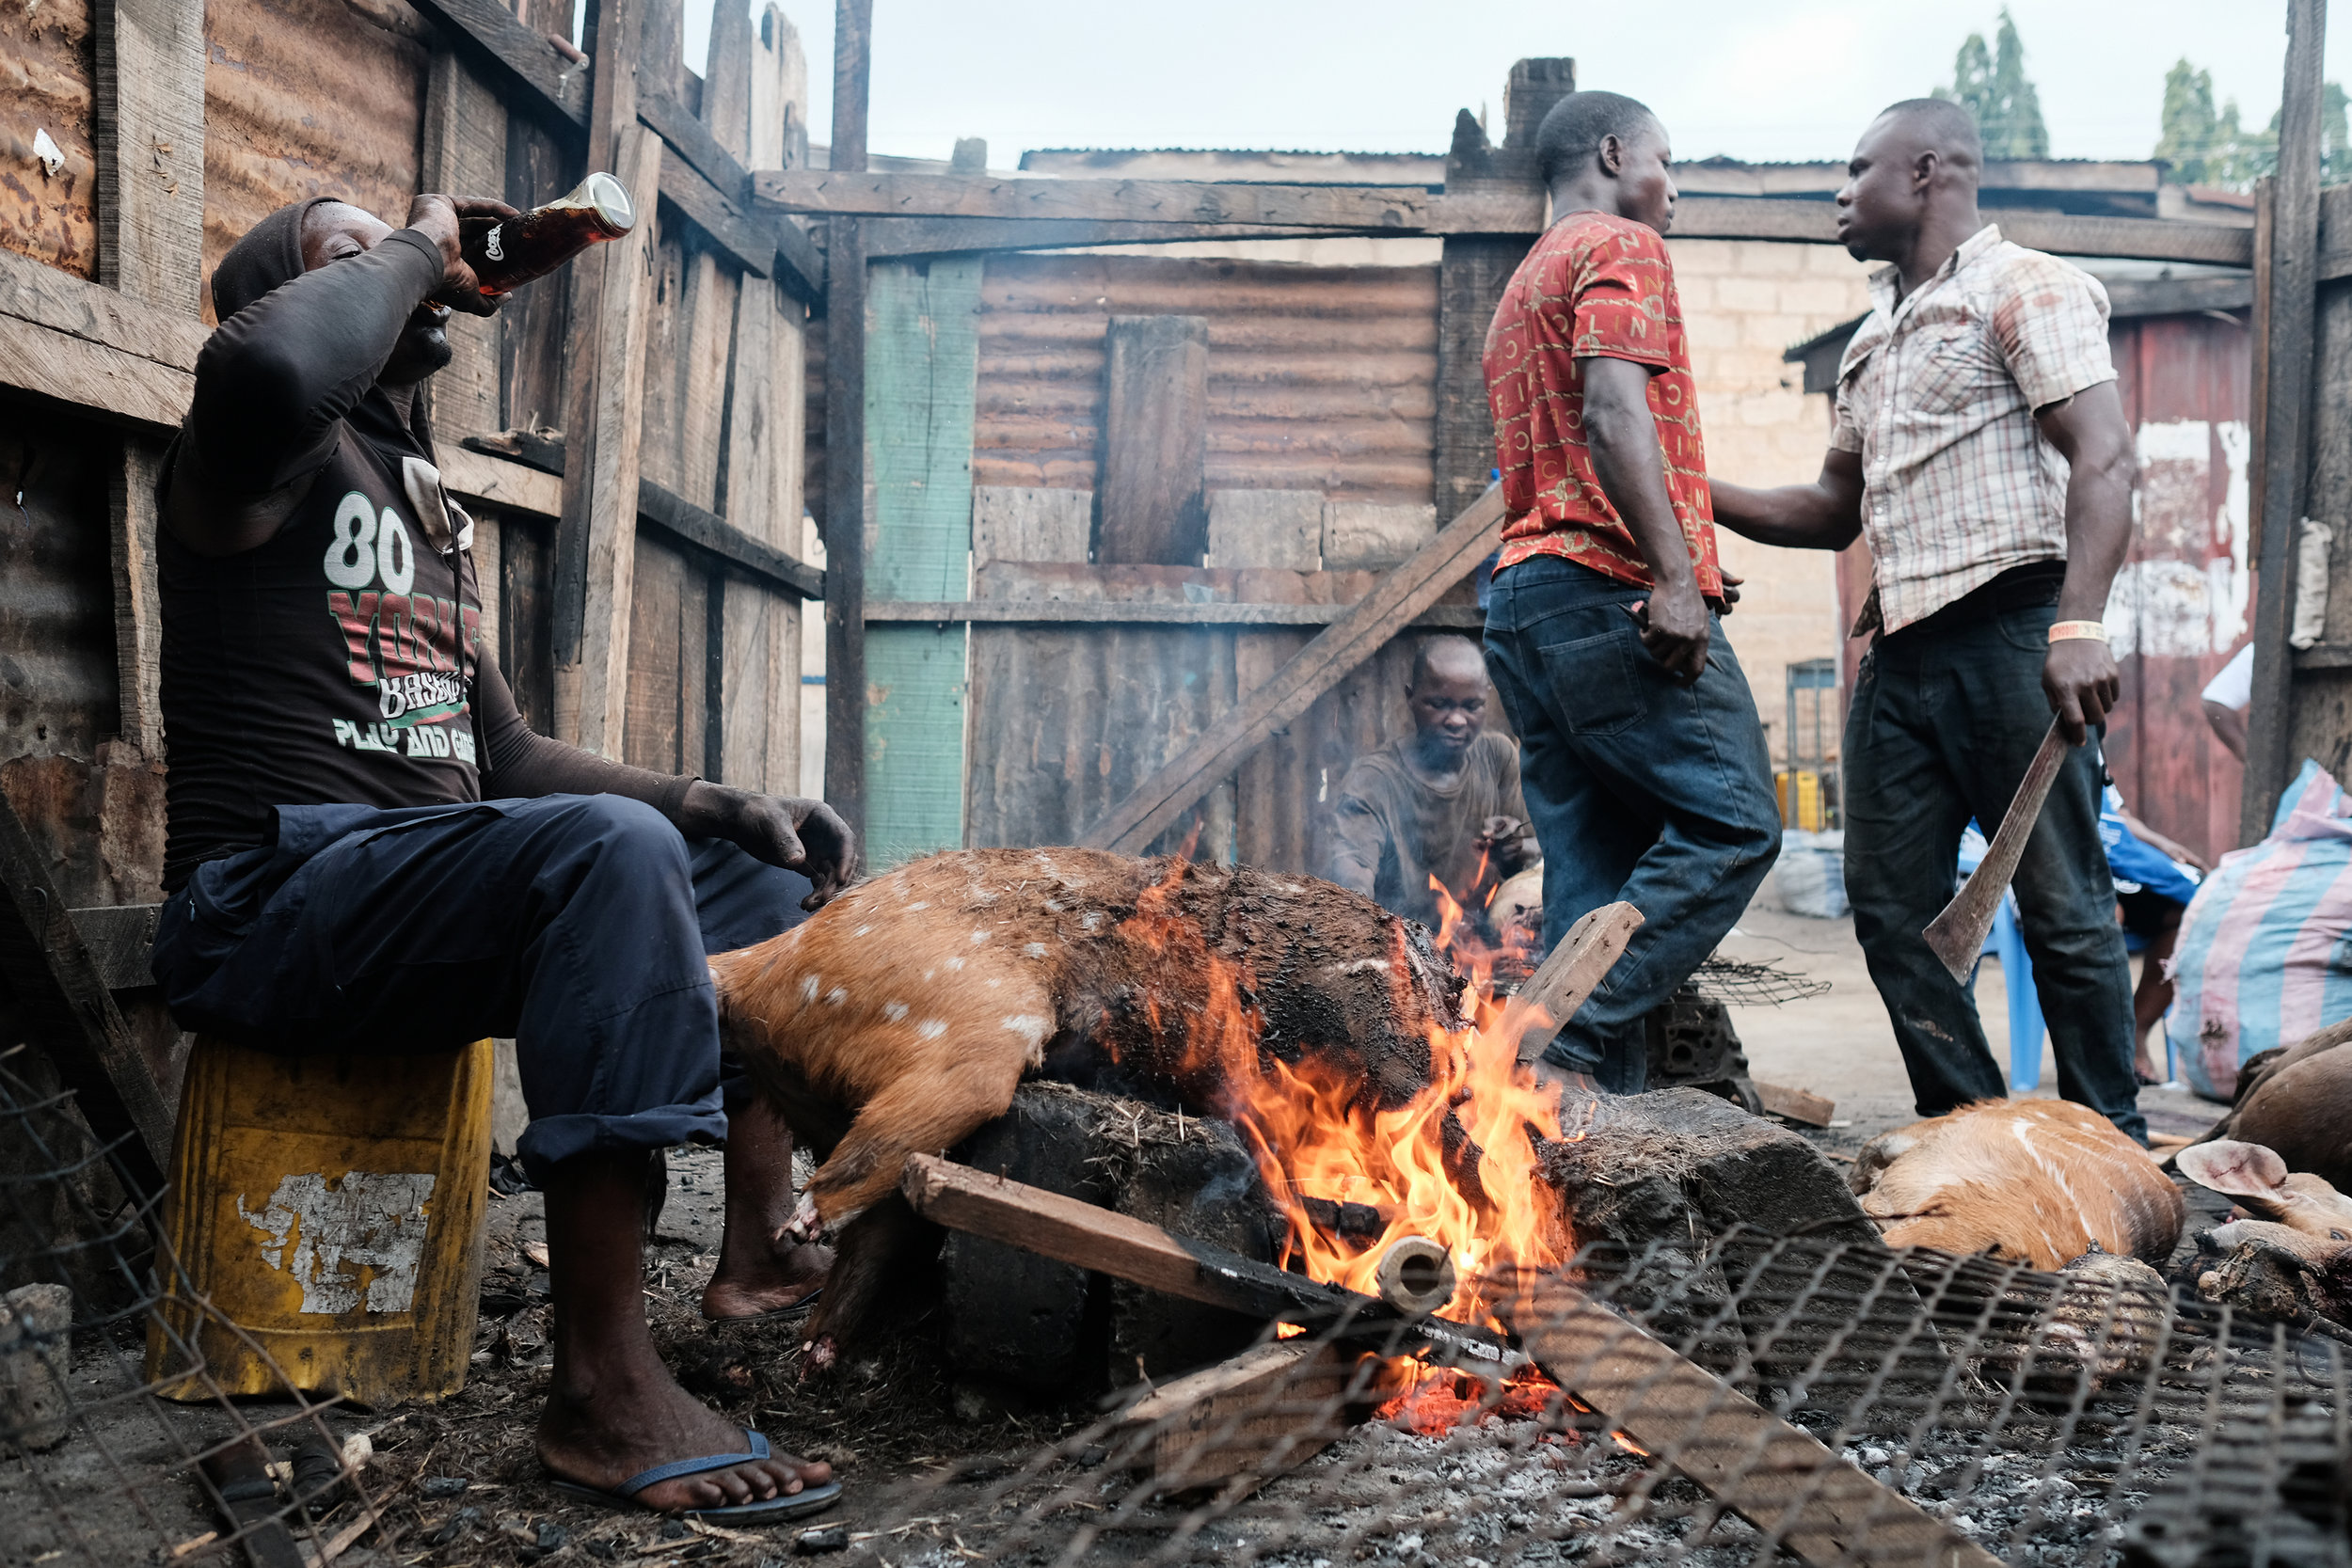 Inside Ghana's biggest bushmeat market  by Nyani Quarmyne / published on  mosaicscience.com / Credit: Nyani Quarmyne / Panos Pictures 2016